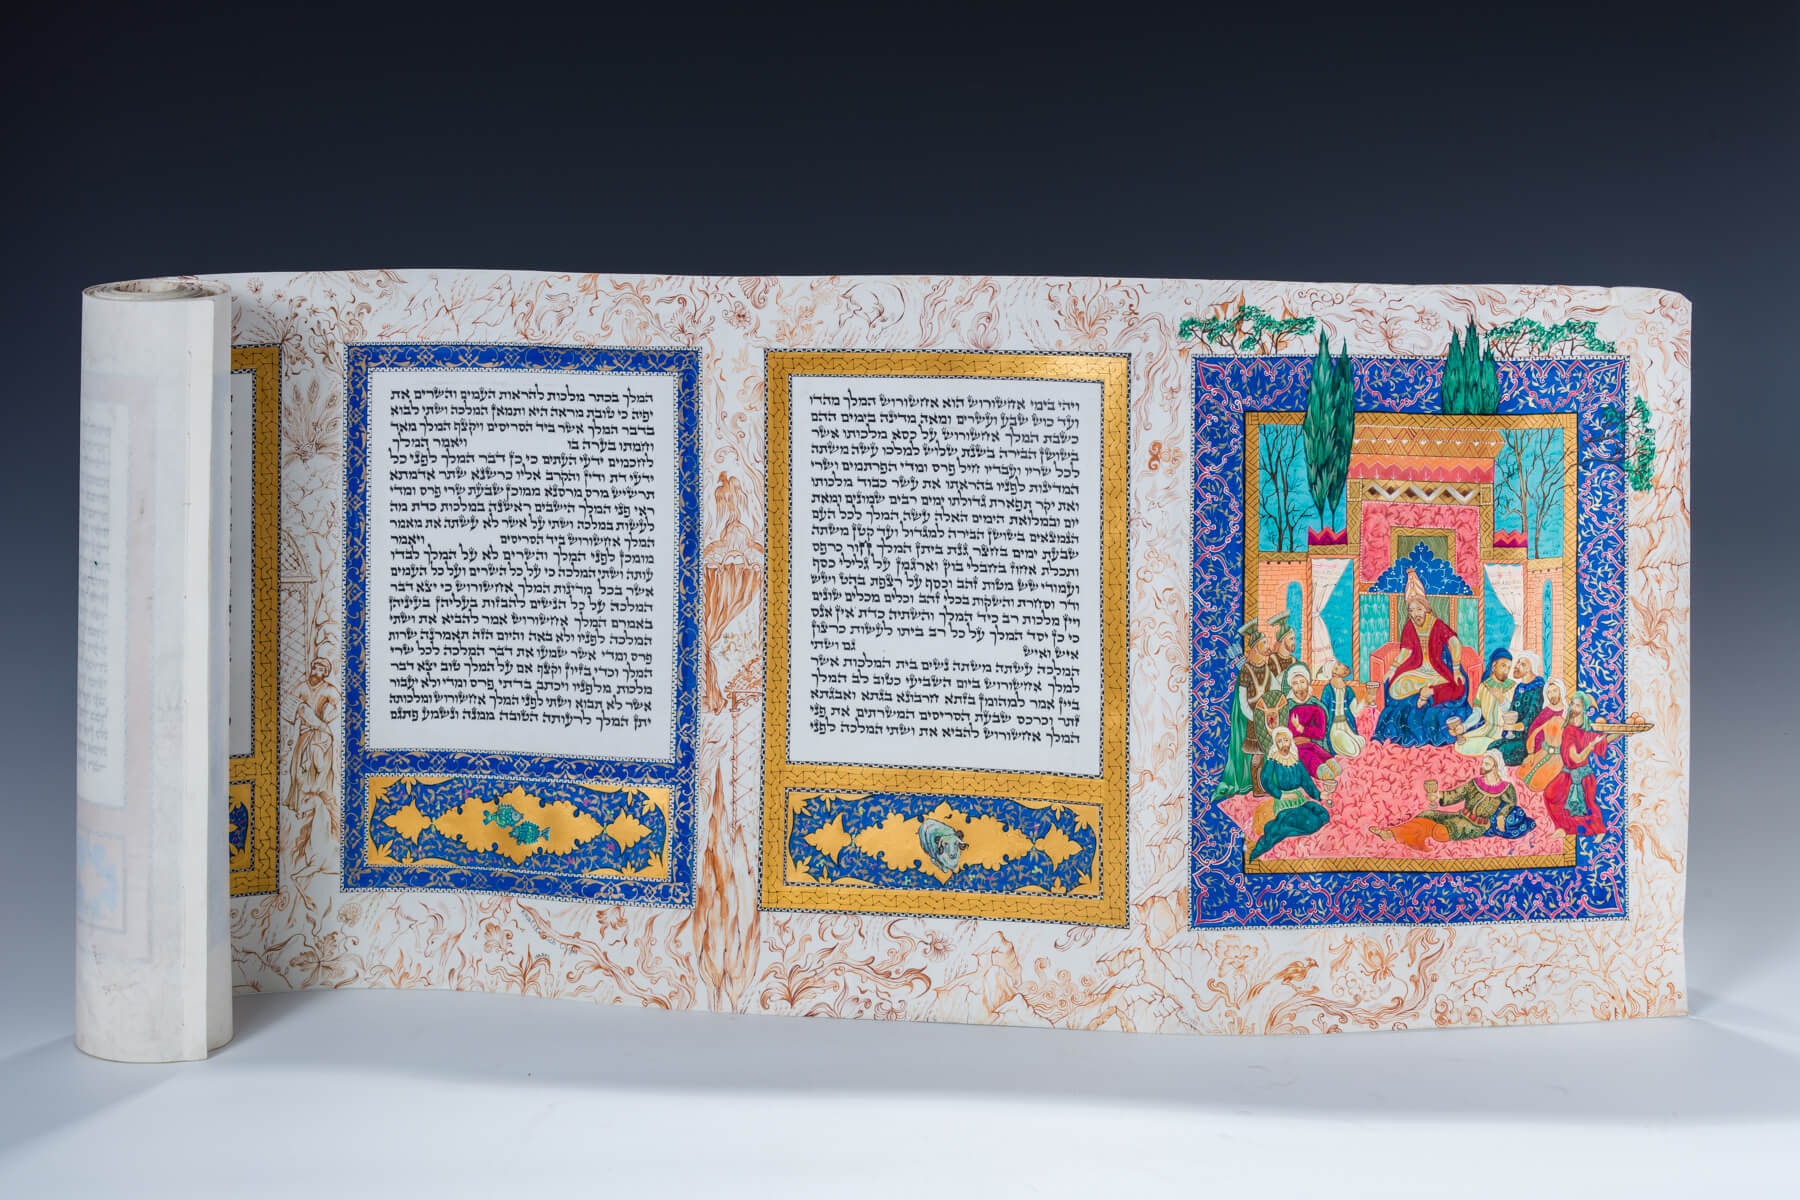 147. An Illuminated Megillah By Olga Khaskovich